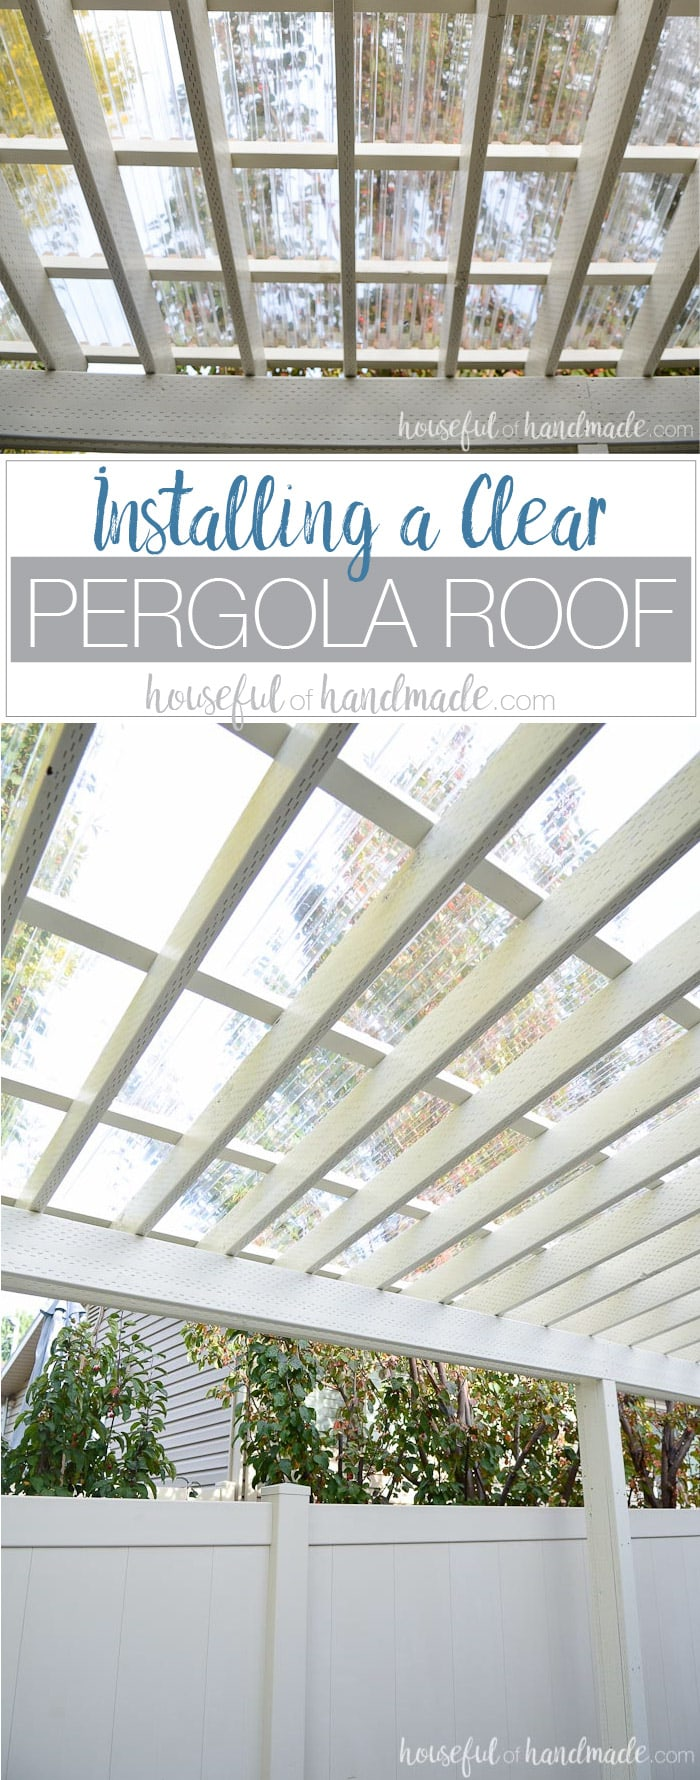 Installing A Clear Pergola Roof A Houseful Of Handmade